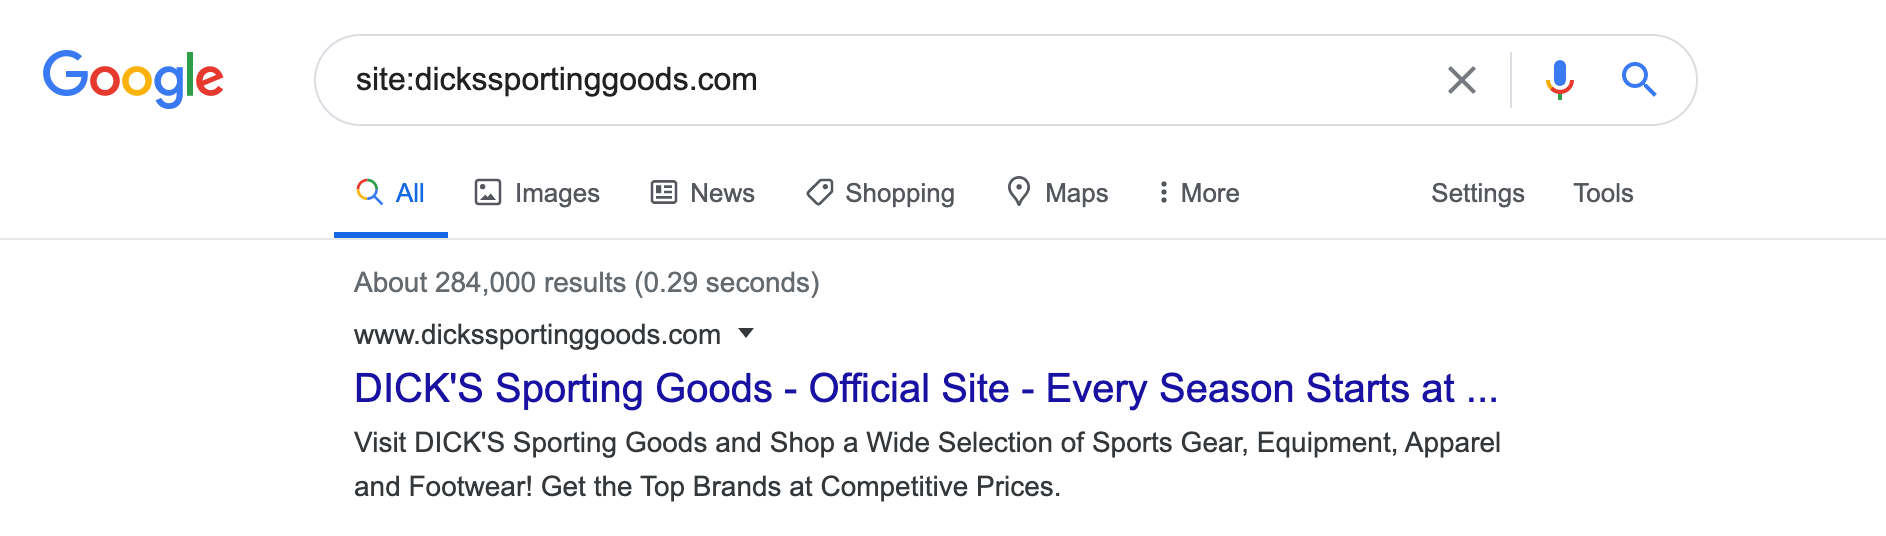 Example of a site search